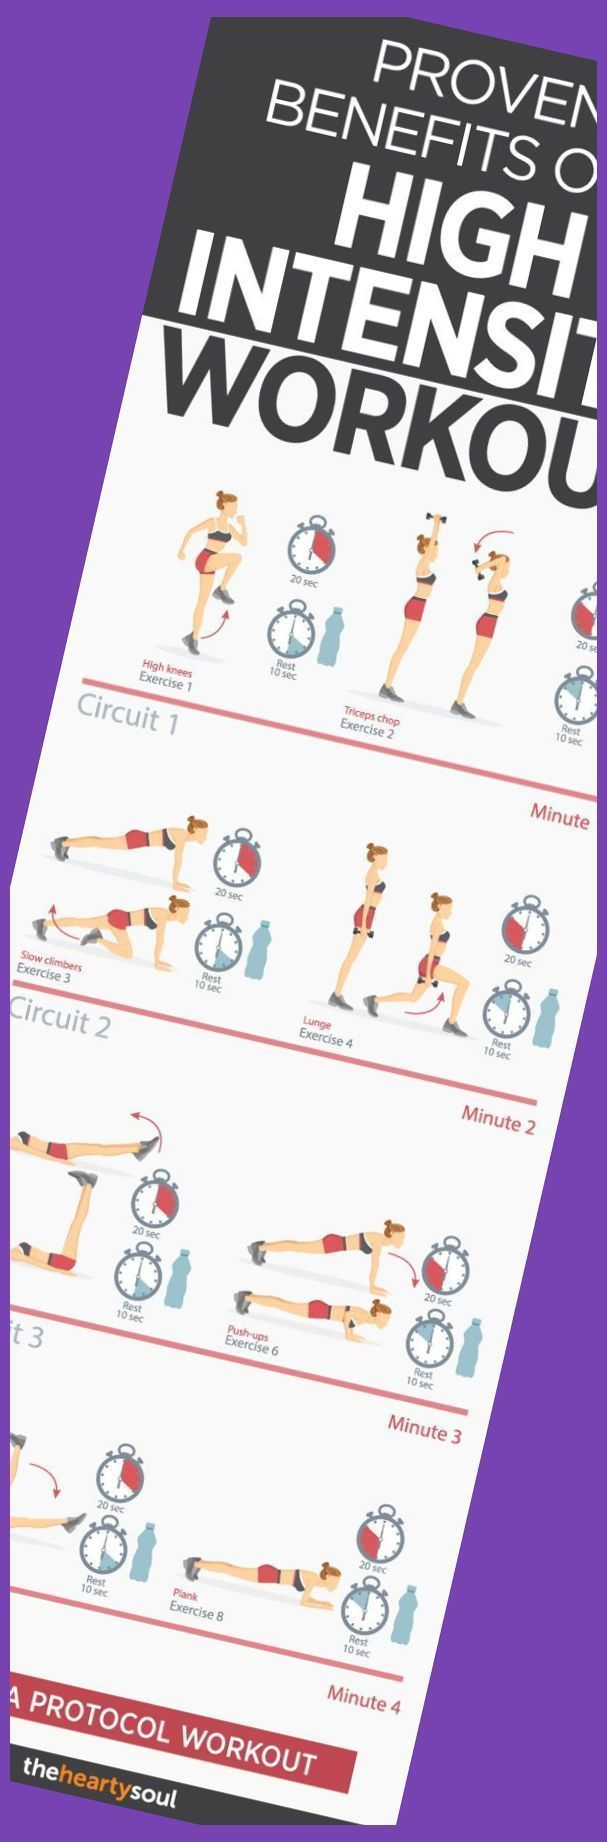 workout routine calendar #workout #workoutroutine Can 7 Minutes of Exercise Really Help Keep You Fit...